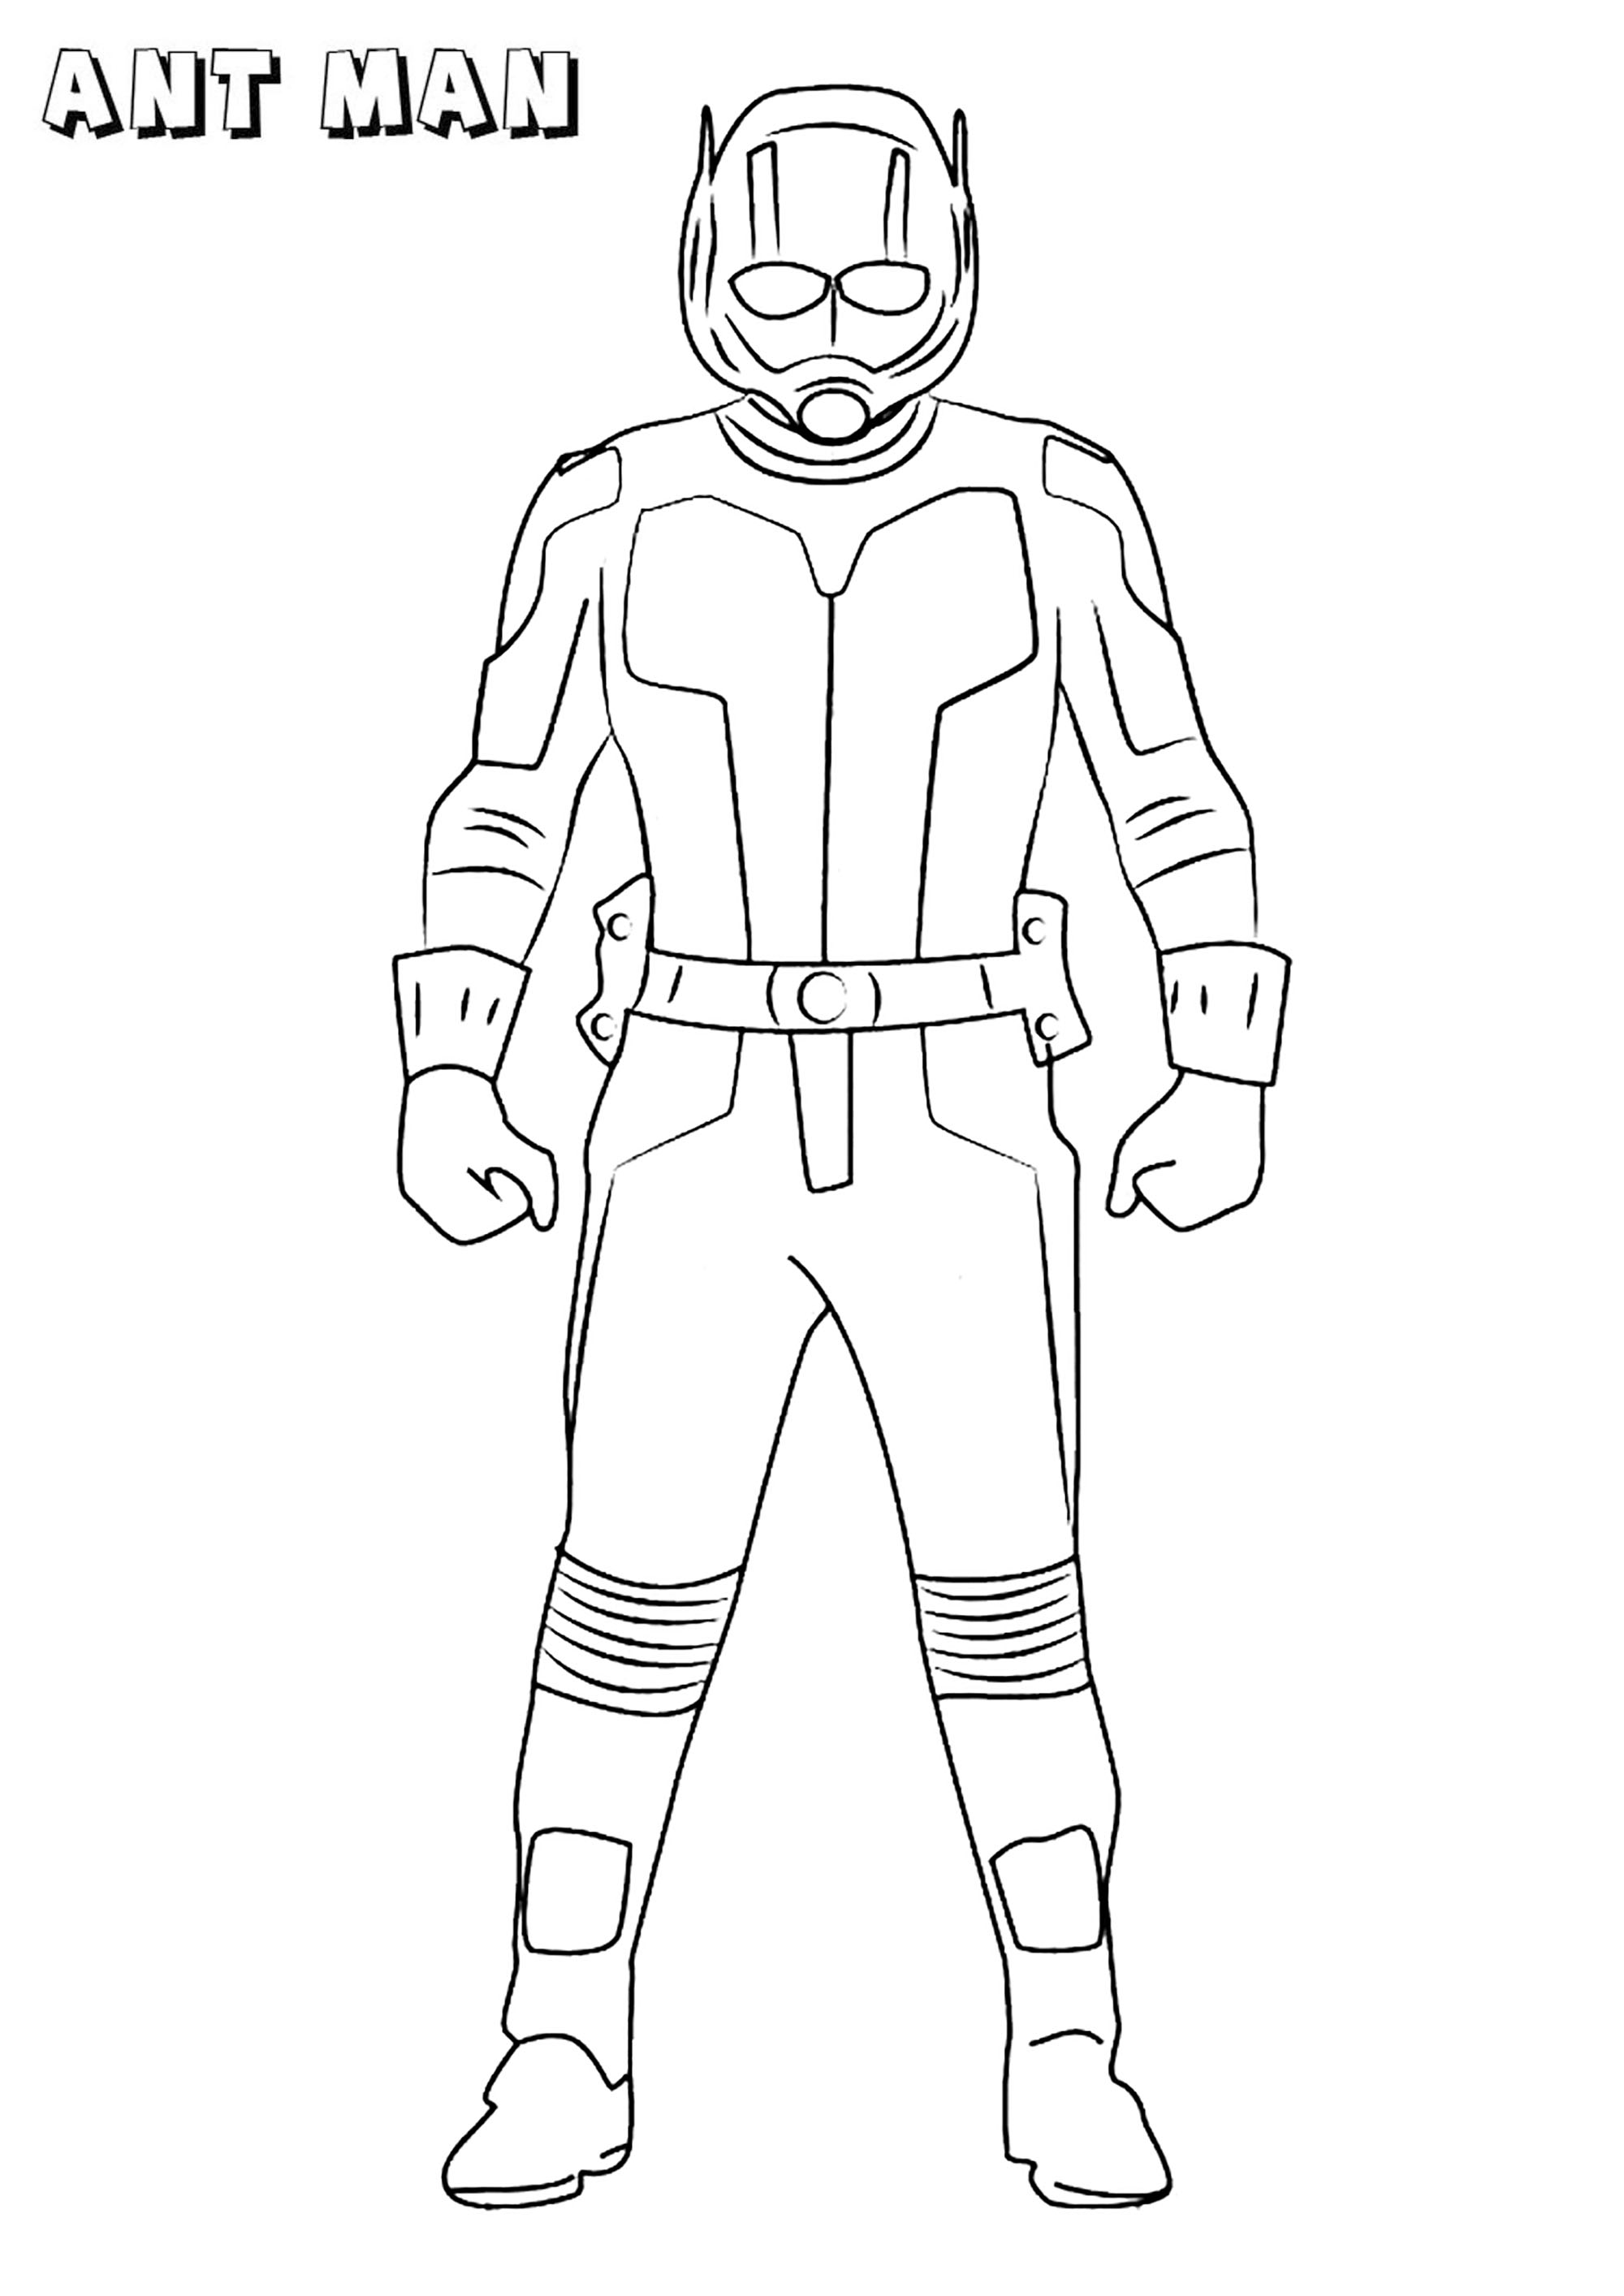 Easy free Ant-Man coloring page to download